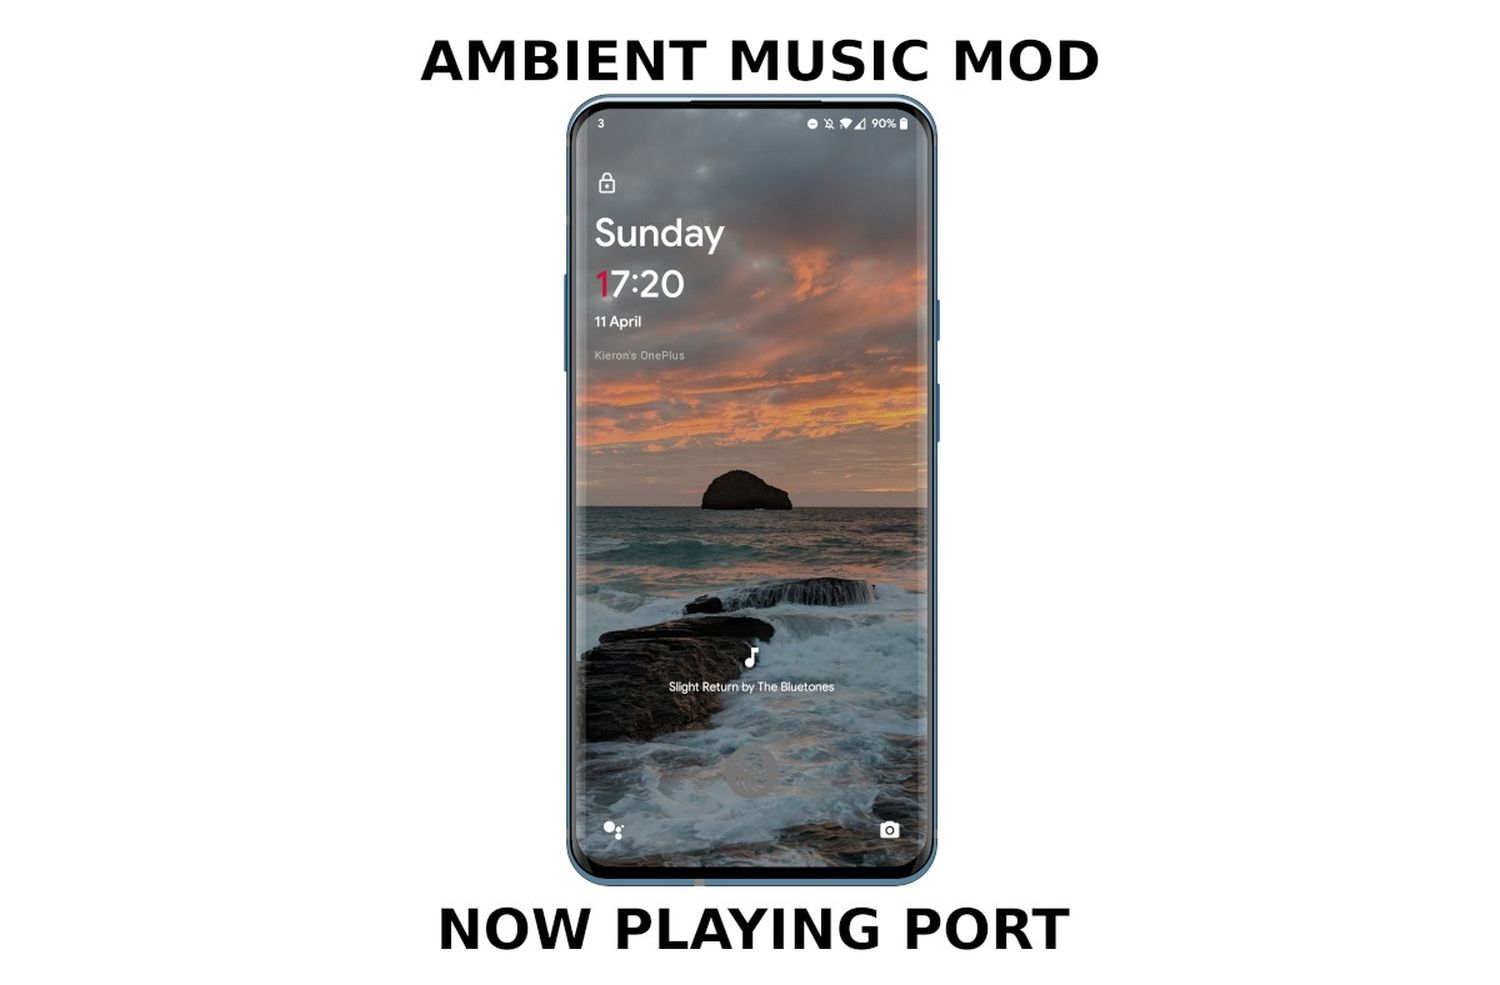 pixel ambient music now playing mod